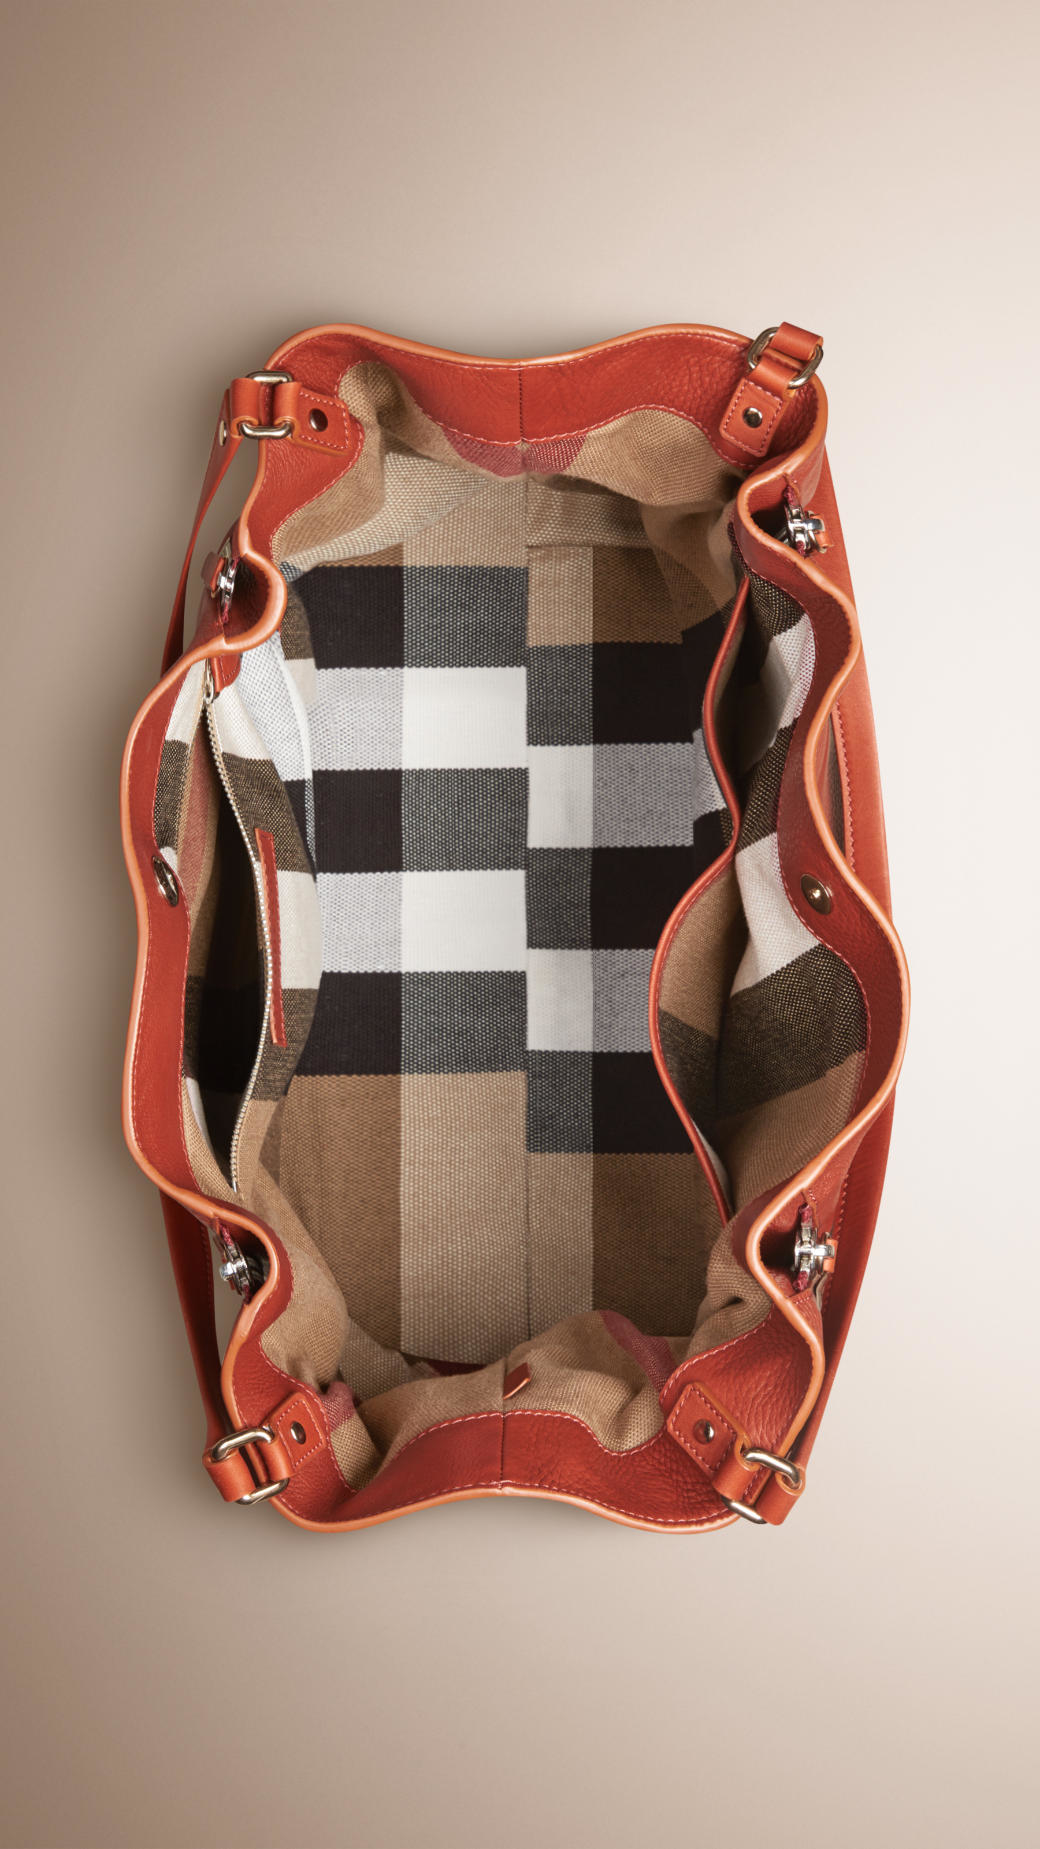 ea29540cfb56 Lyst - Burberry Medium Check Detail Leather Tote Bag in Brown